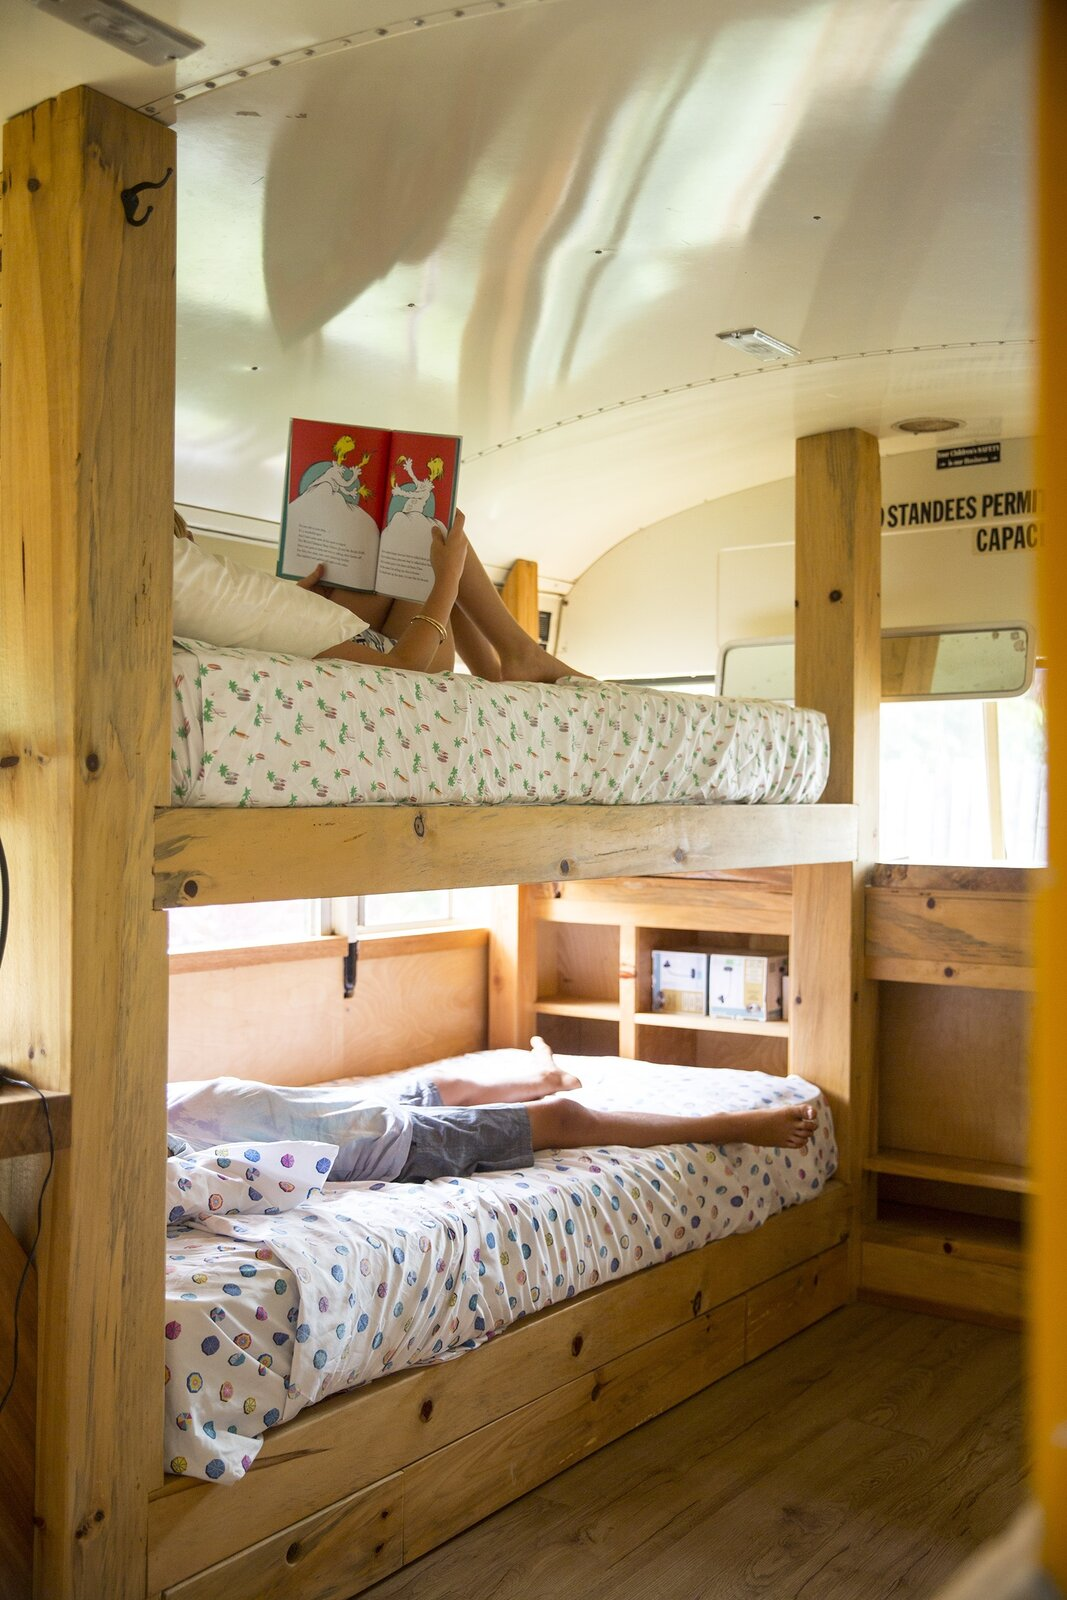 Photo 4 of 10 in These Legendary Surfers' Converted School Bus Connects to a Three-Story Tree House on Hawaii